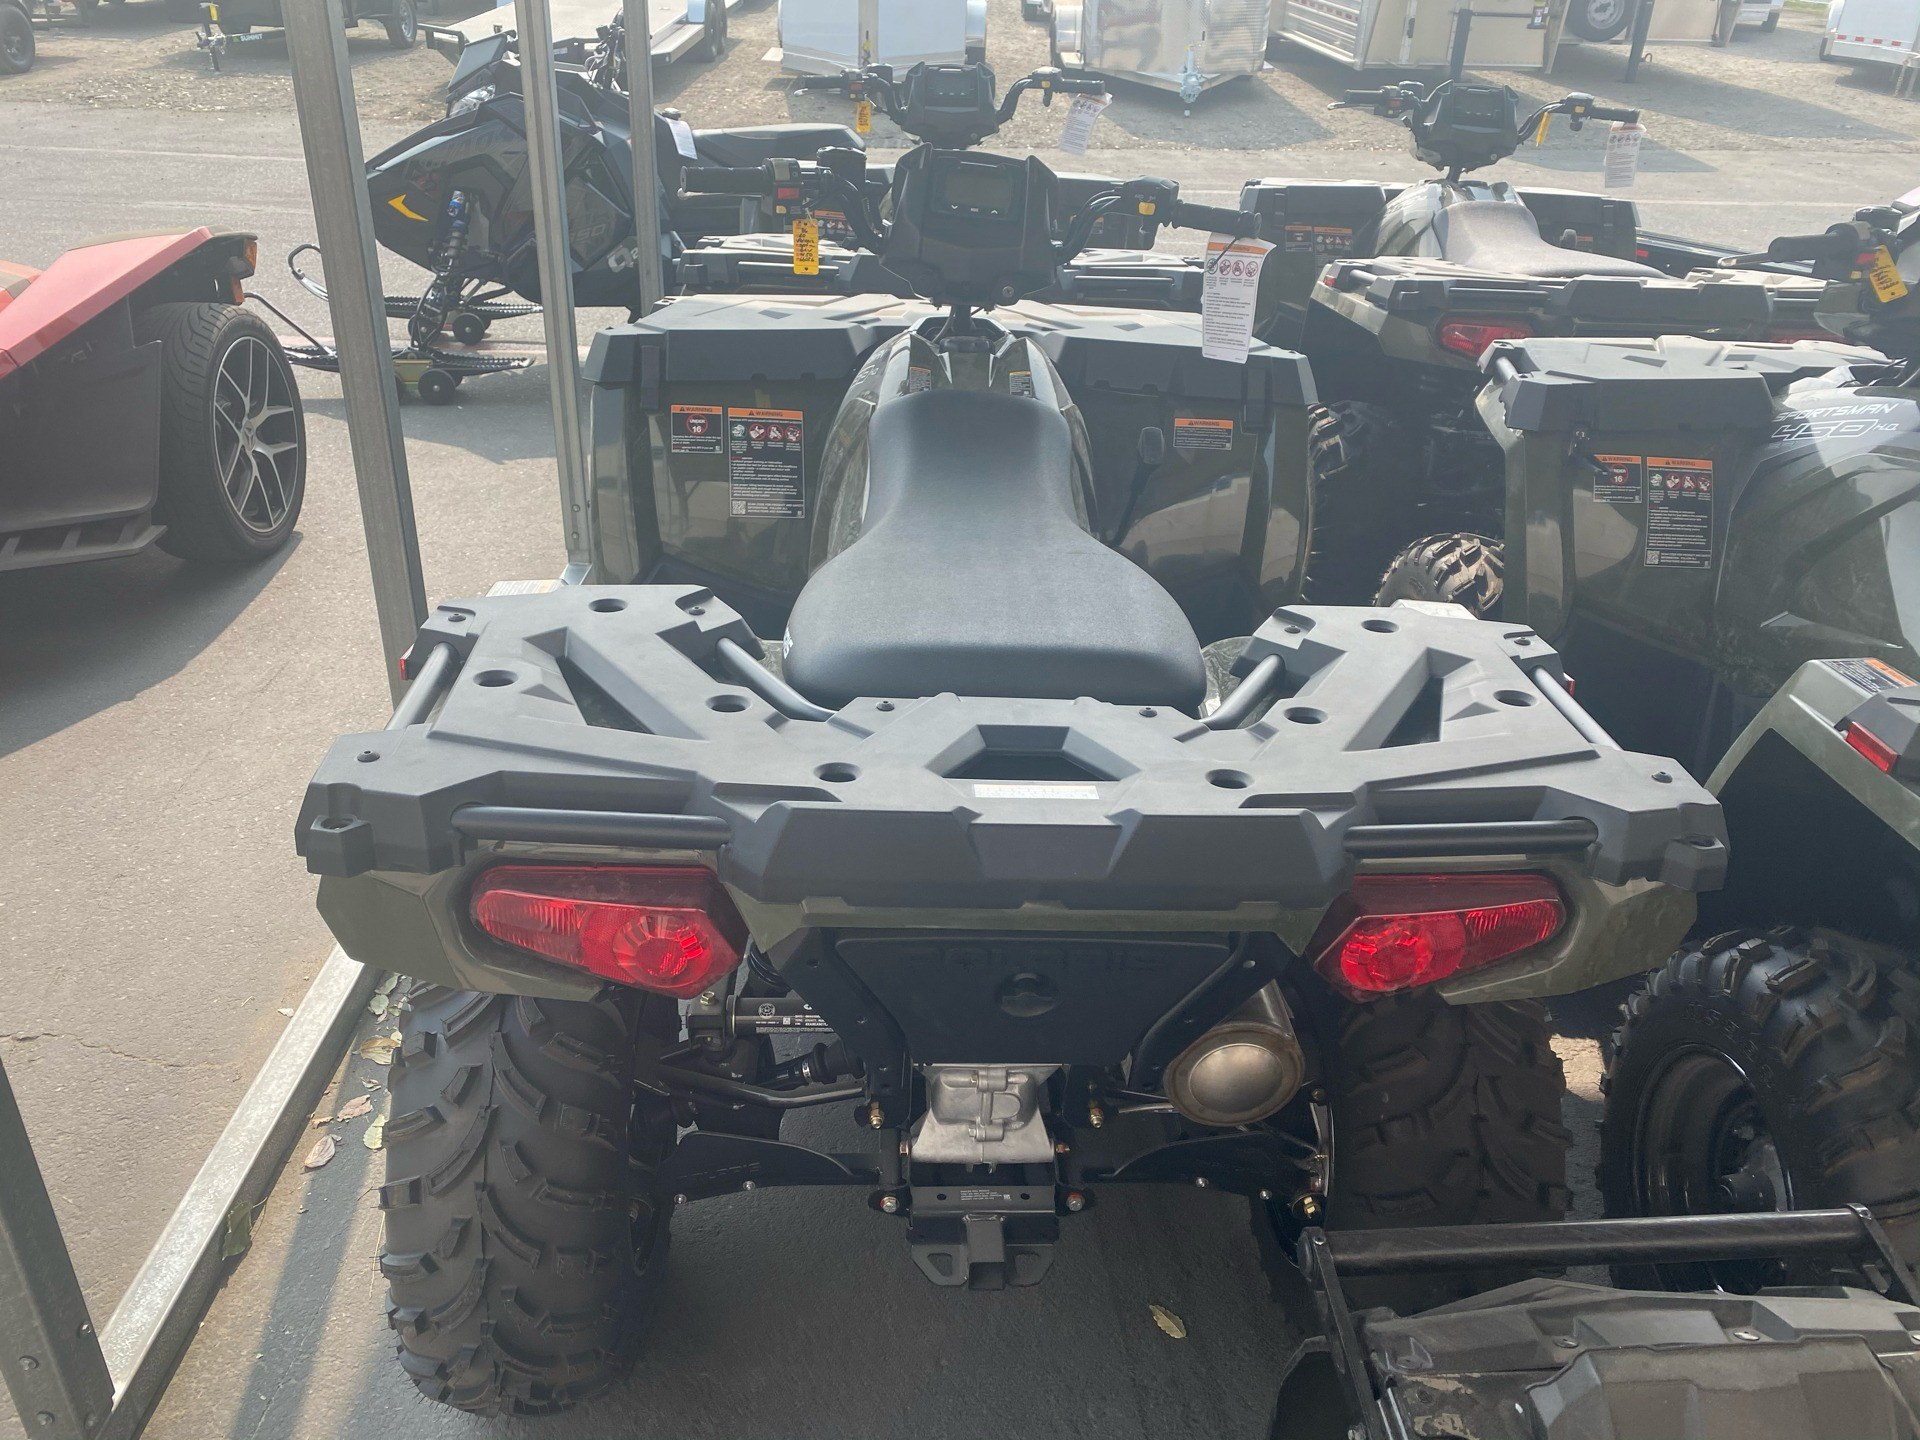 2020 Polaris Sportsman 450 H.O. in Elk Grove, California - Photo 7